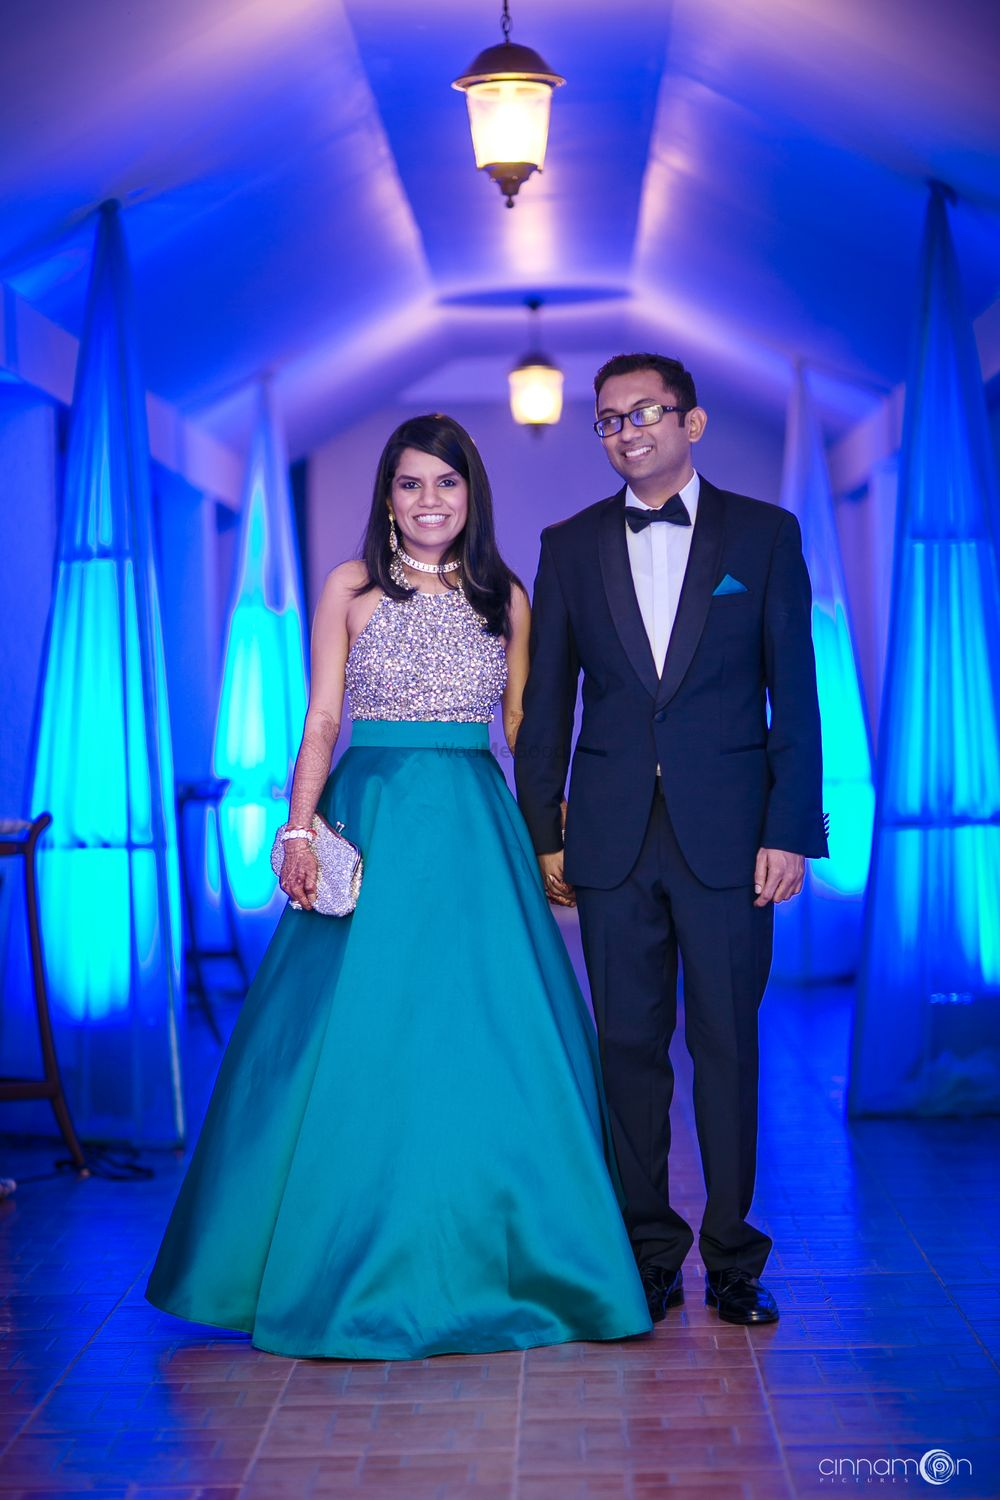 Photo From Richa & Hari - By Cinnamon Pictures